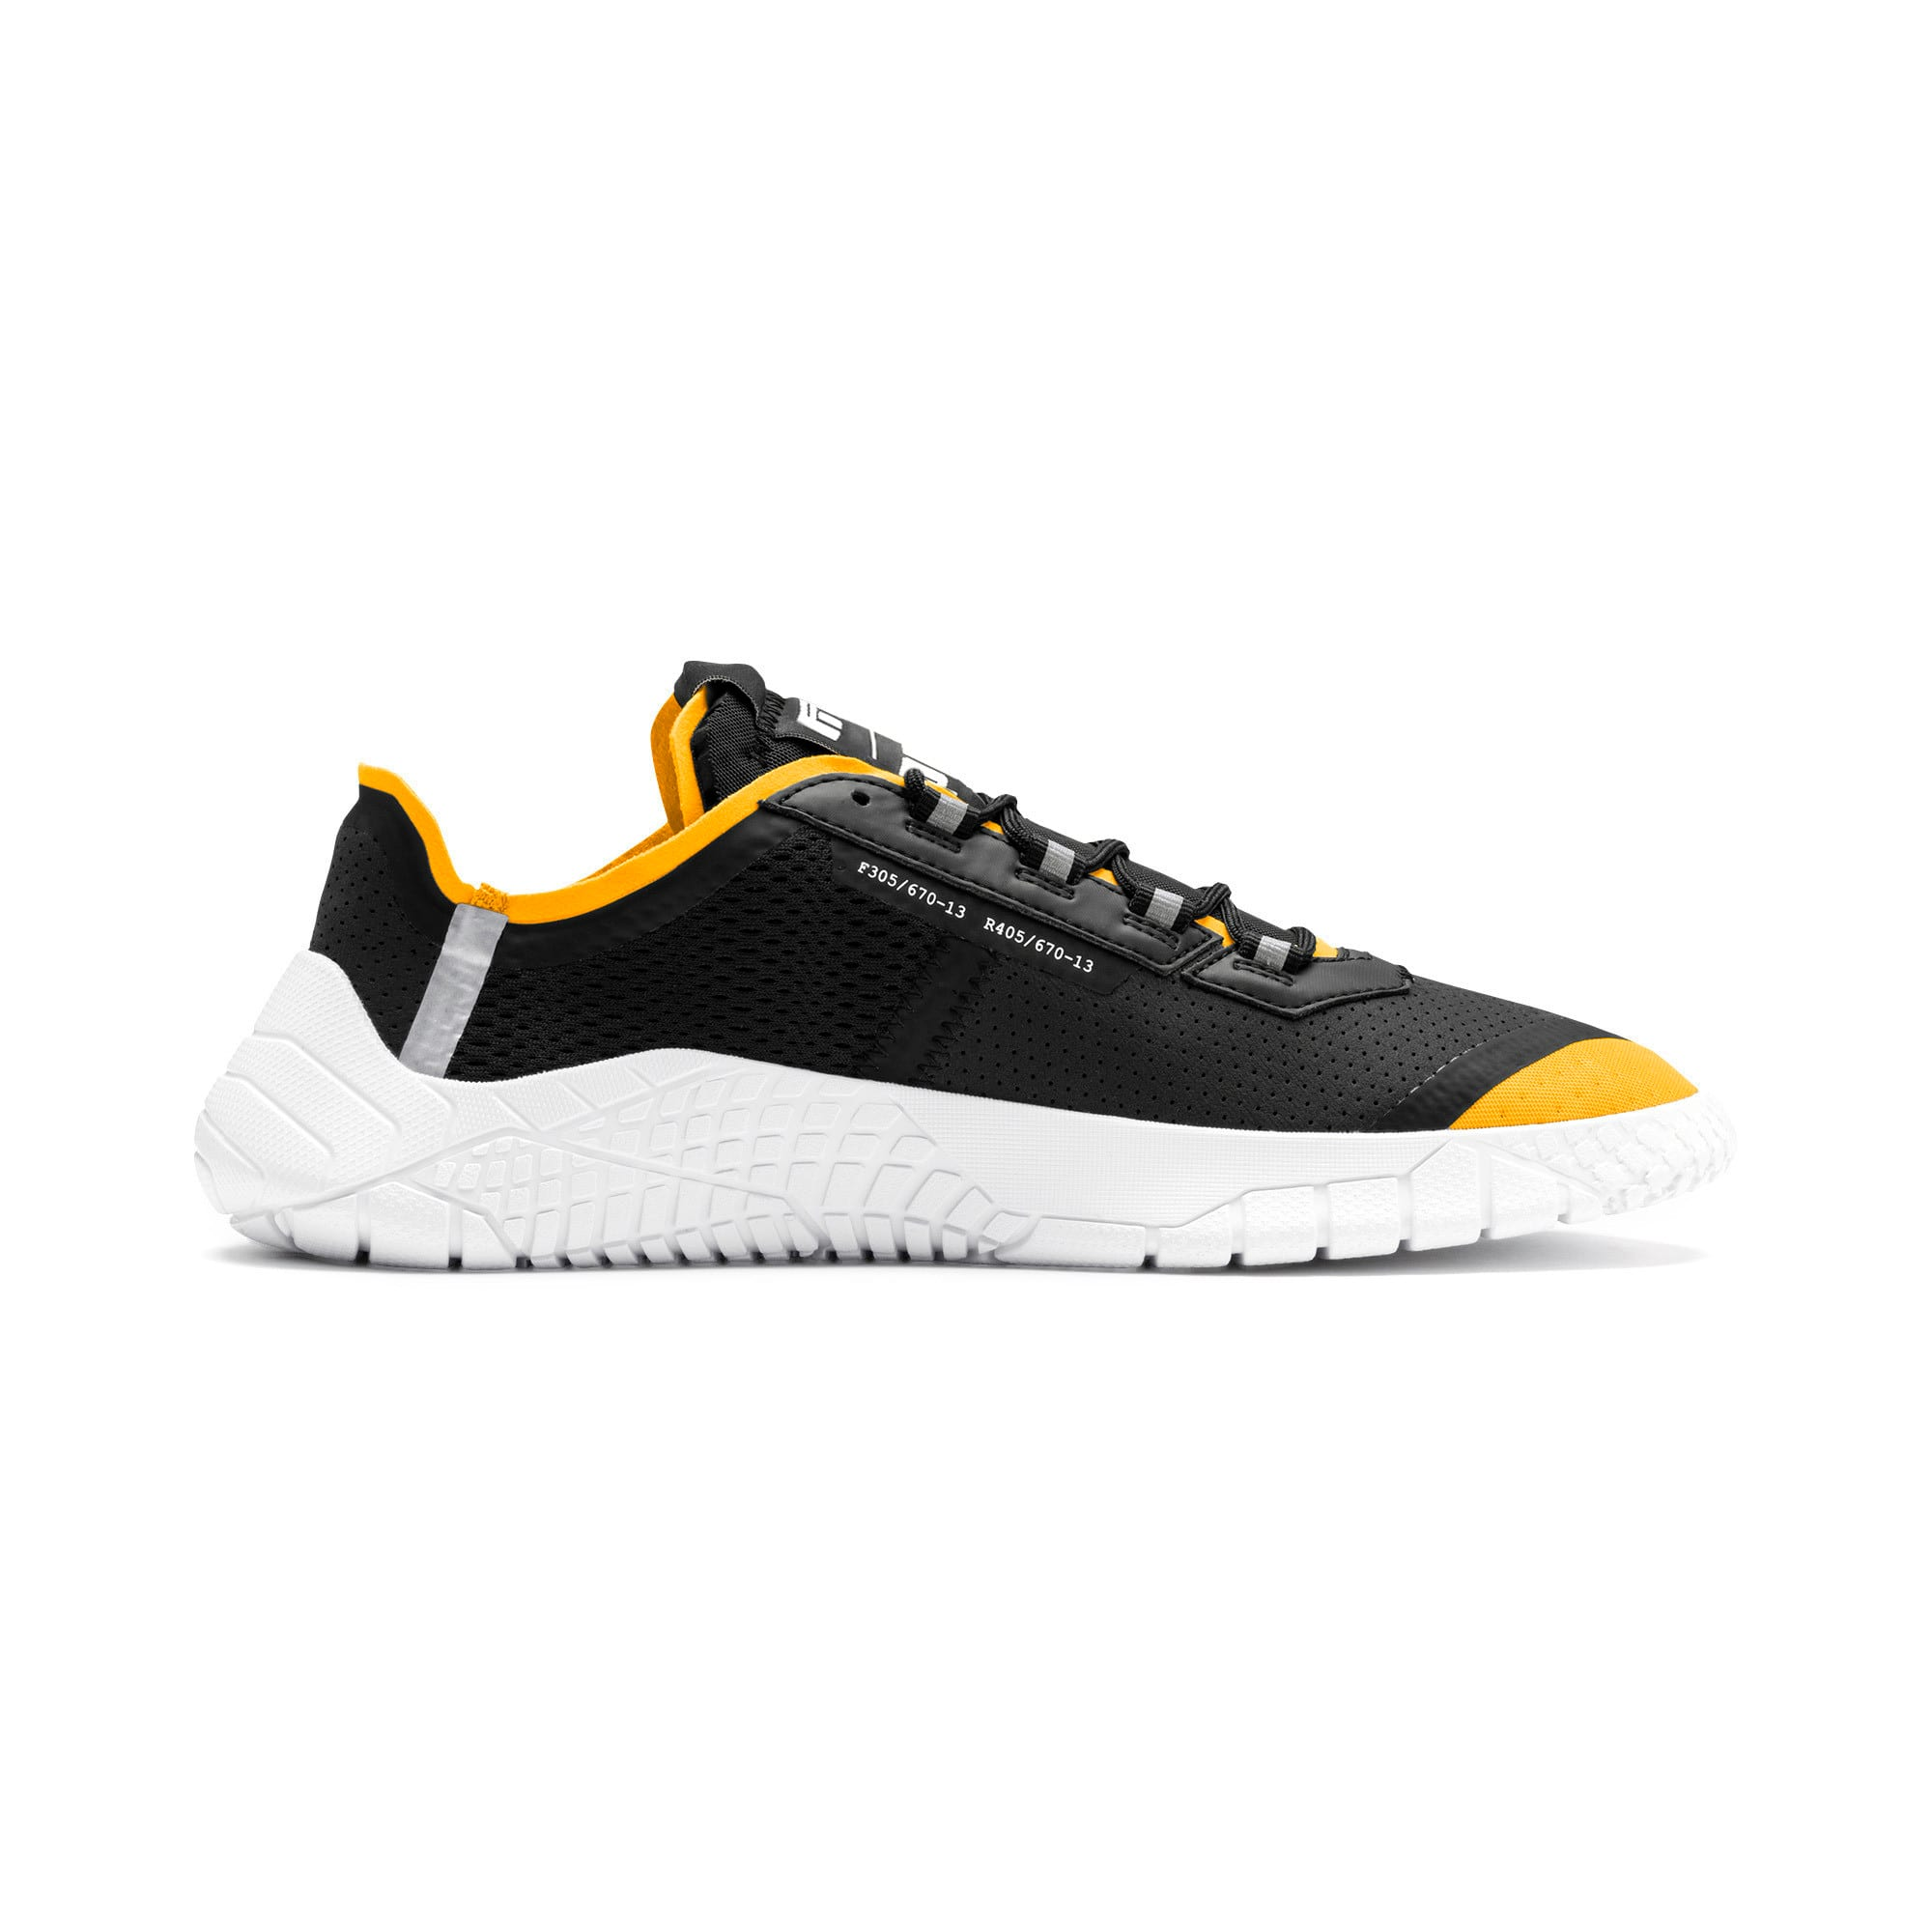 Thumbnail 6 of Scarpe da ginnastica Pirelli Replicat-X, Puma Black-Puma White-Zinnia, medium